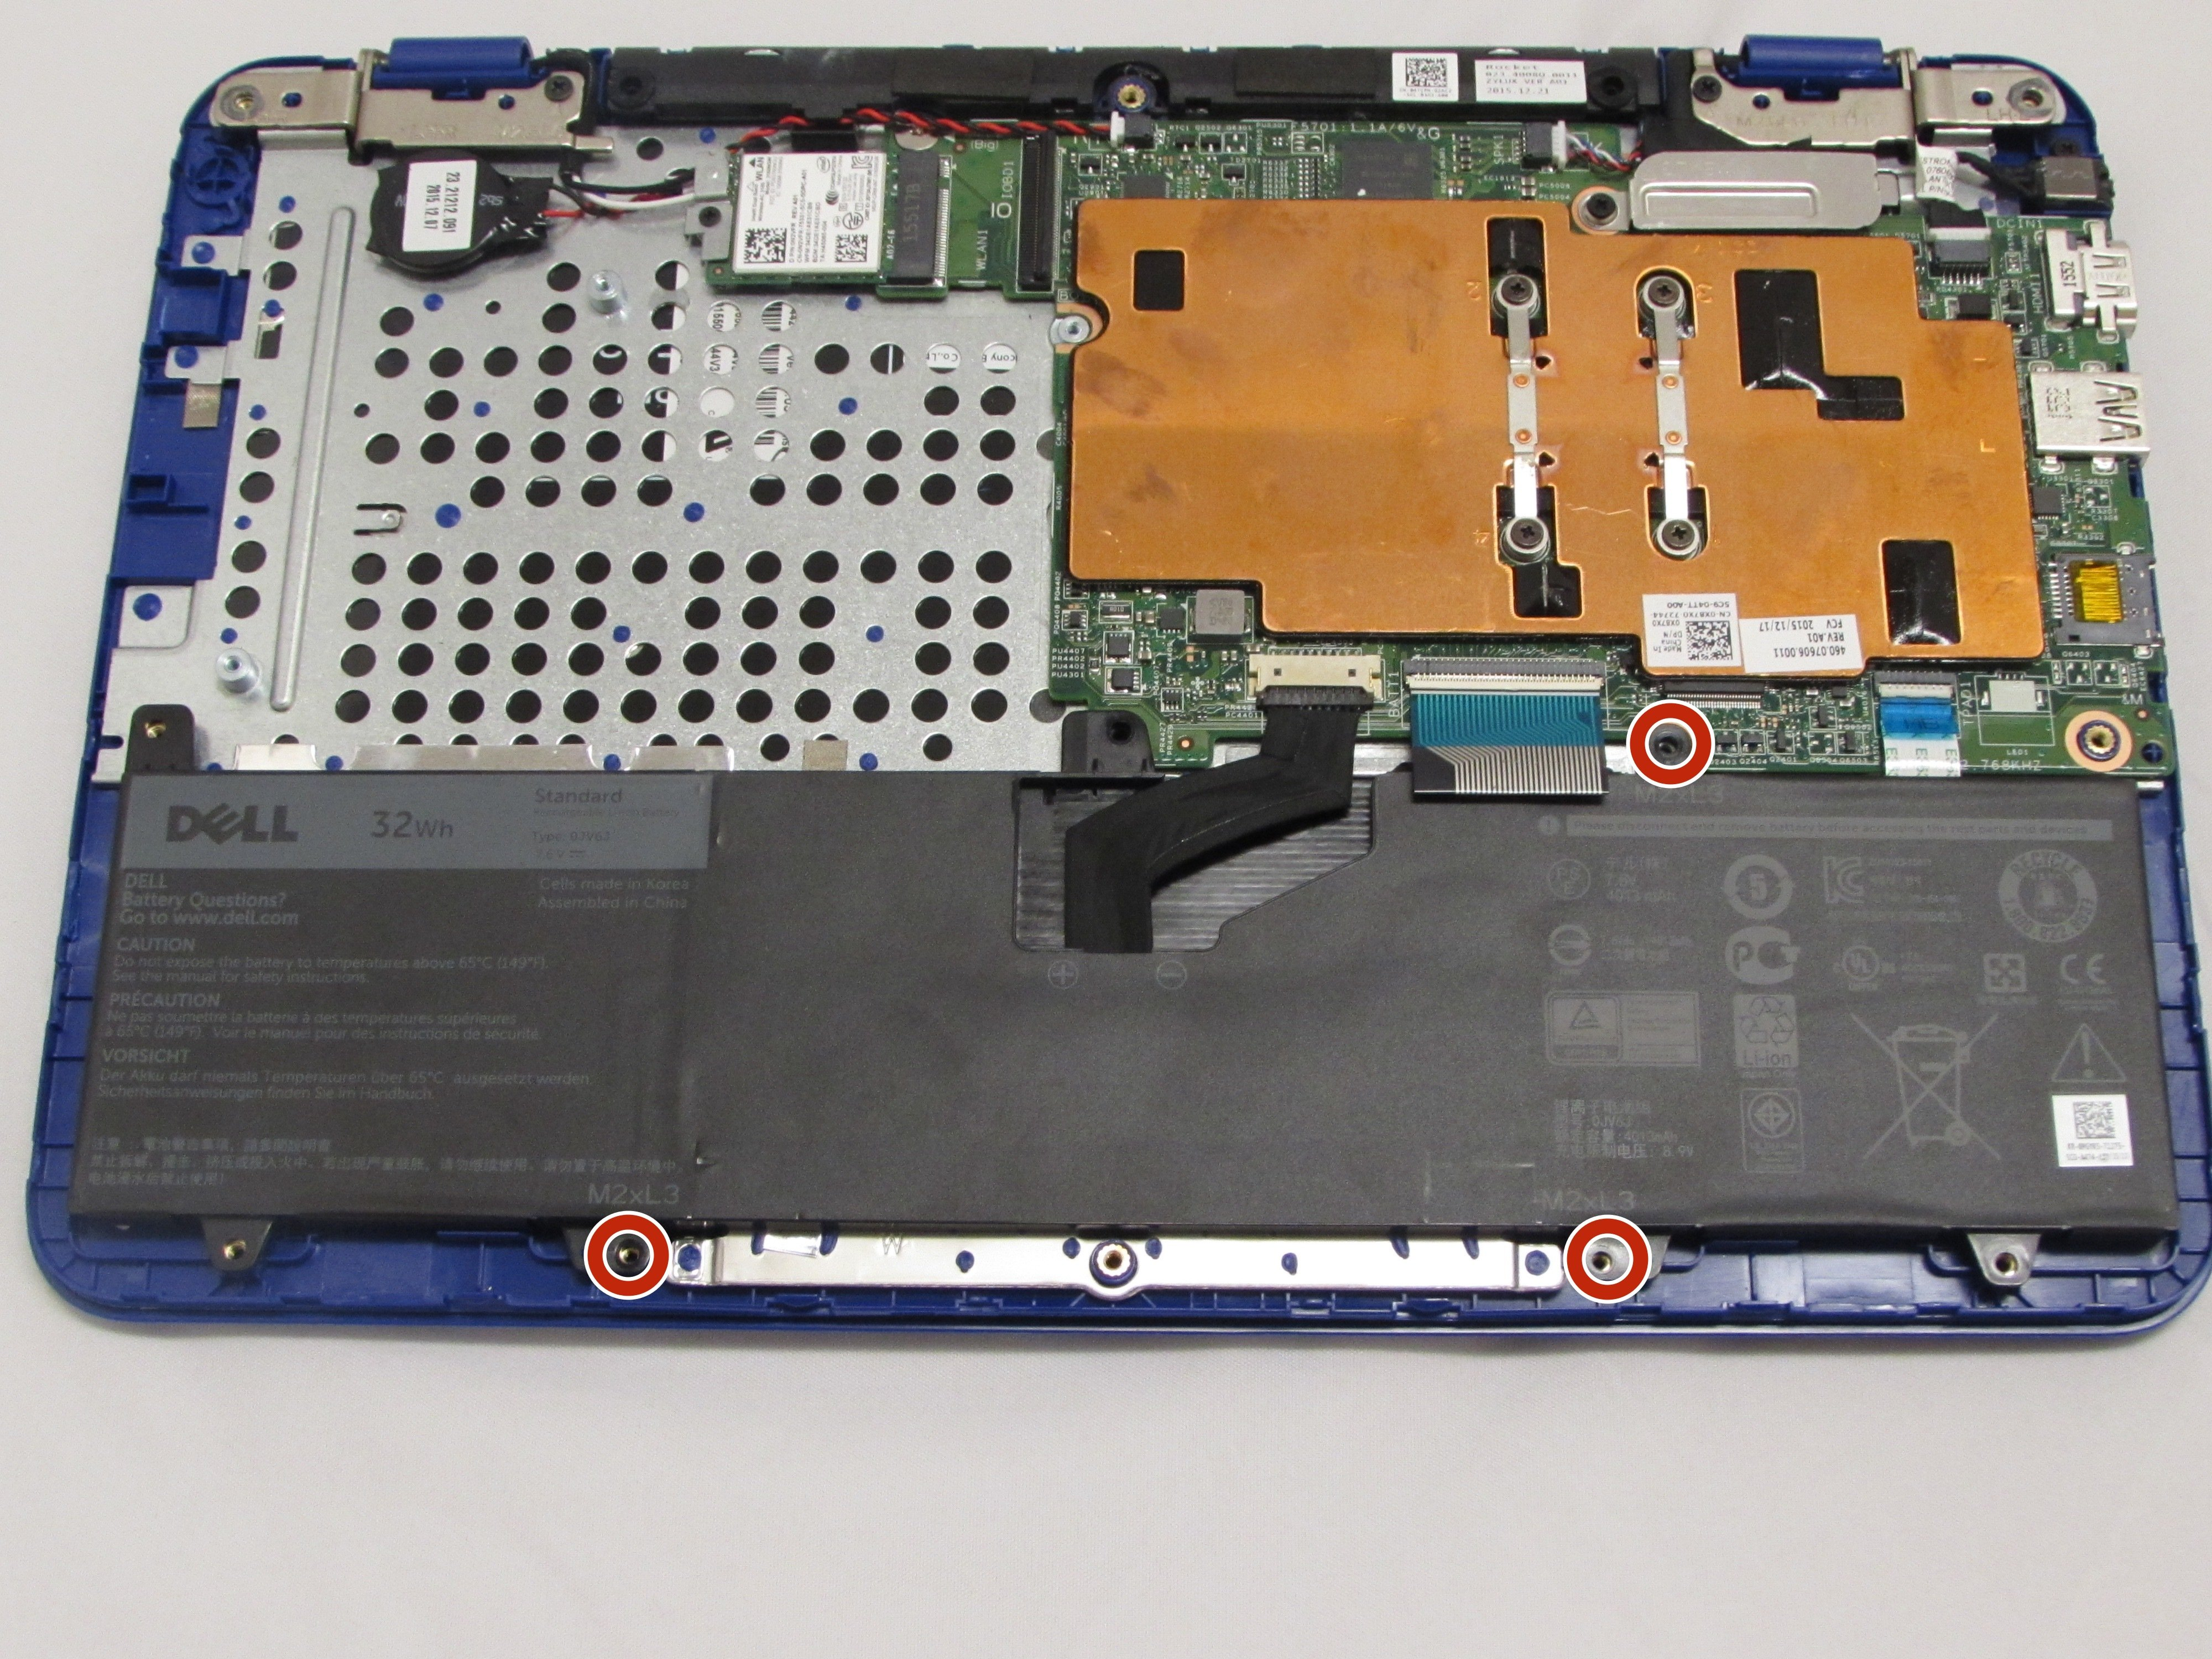 Dell Inspiron 11-3162 Battery Replacement - iFixit Repair Guide